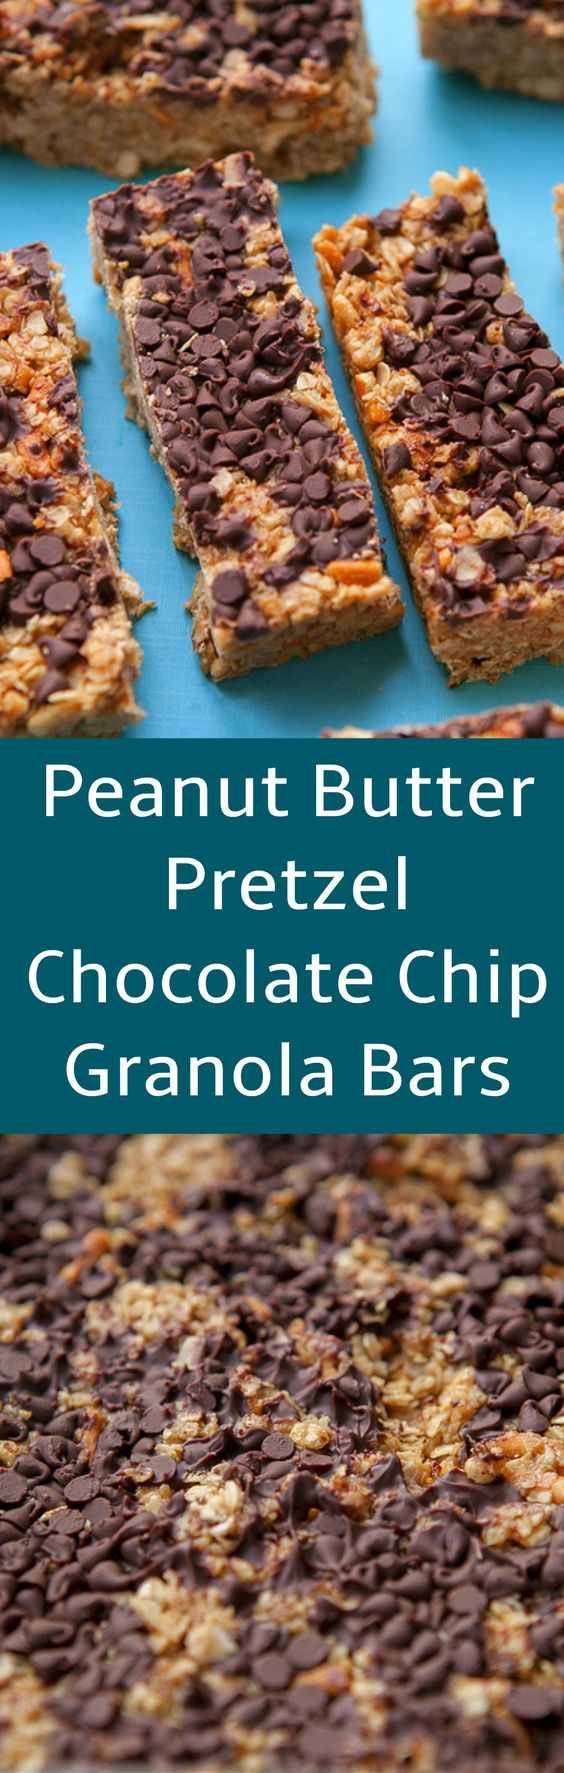 These Homemade Peanut Butter Pretzel Chocolate Chip Granola Bars are about to become your new favorite breakfast, snack and dessert! This is a healthy copycat recipe for Quaker Peanut Butter Chocolate Chip Granola Bars.: